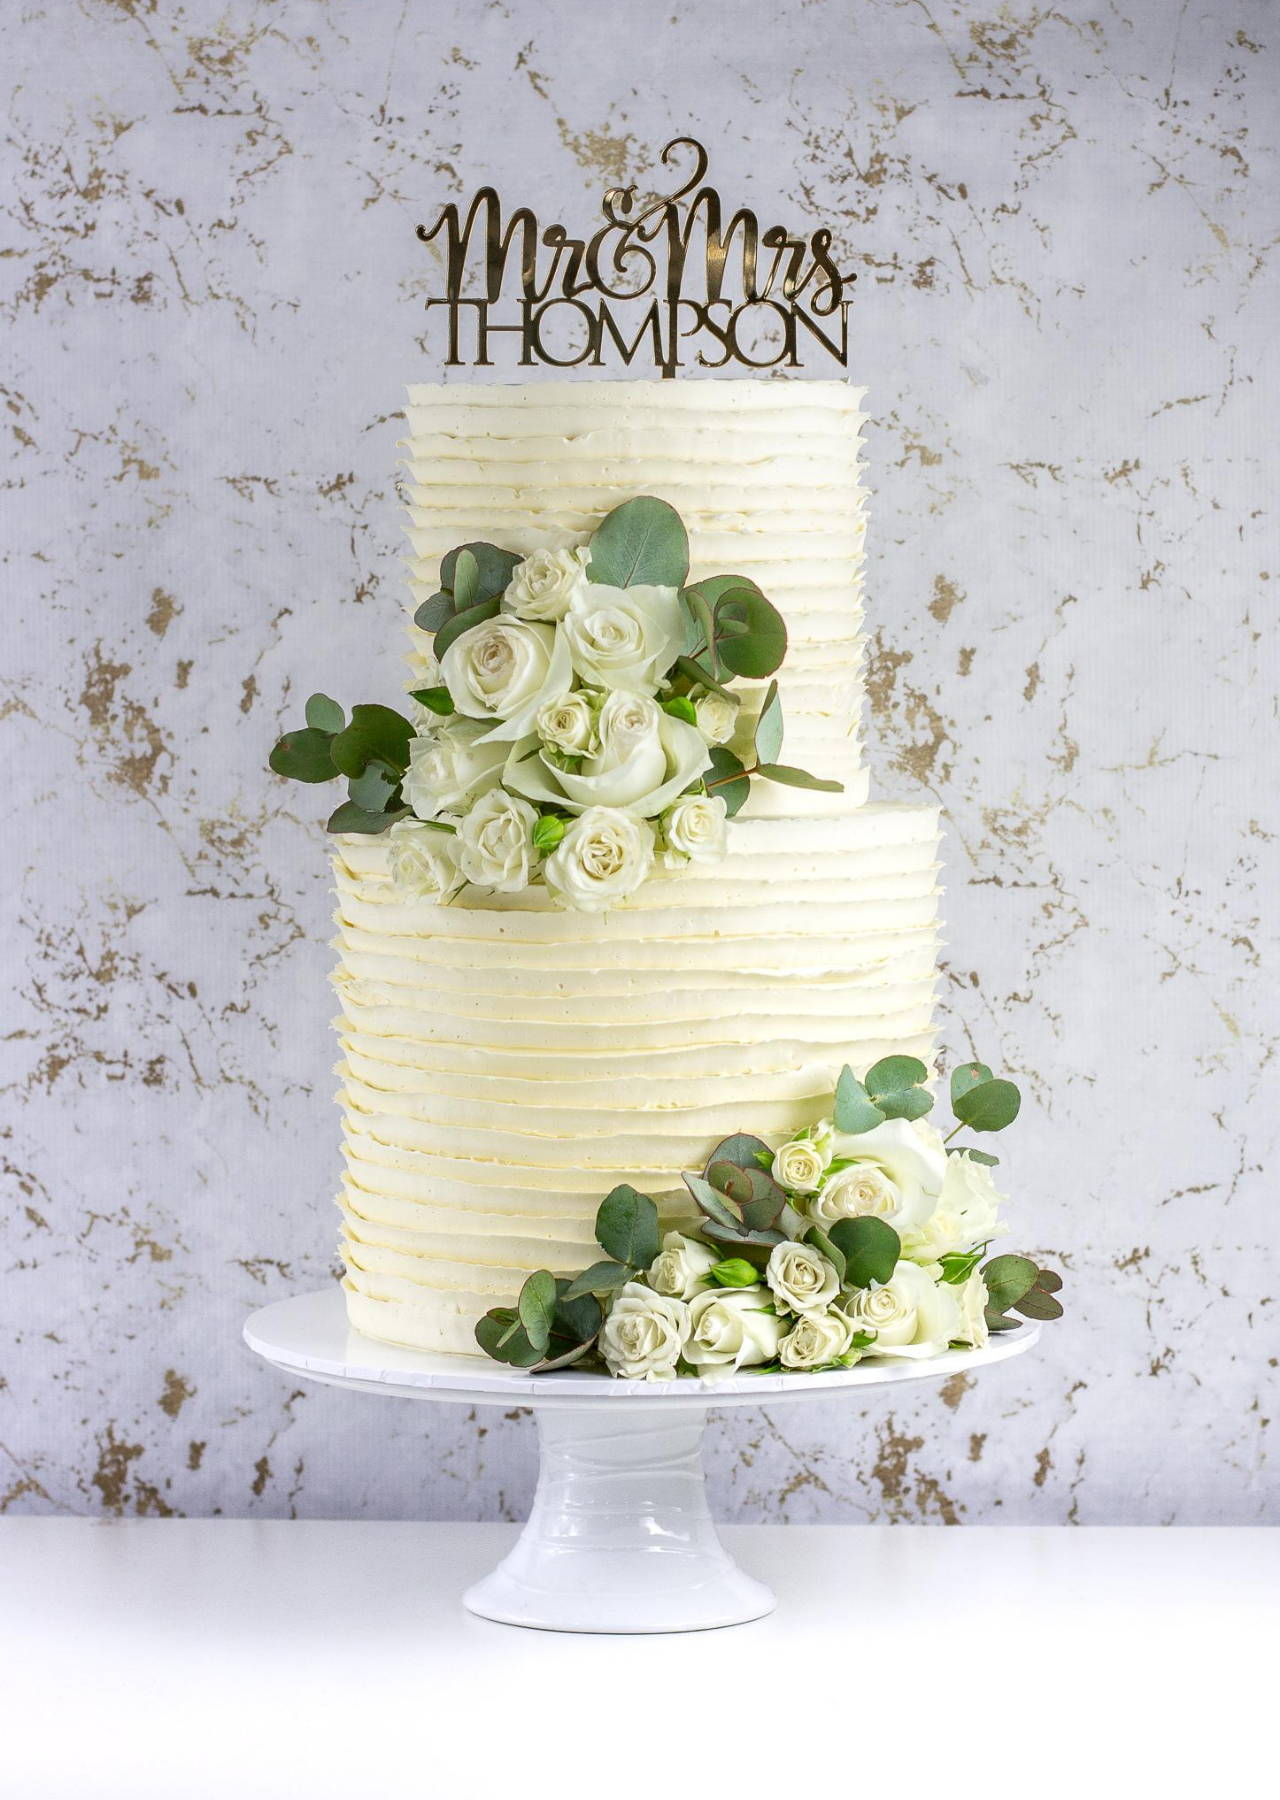 2 Tier Wedding Cake with Ruffle Buttercream Finish and White Roses